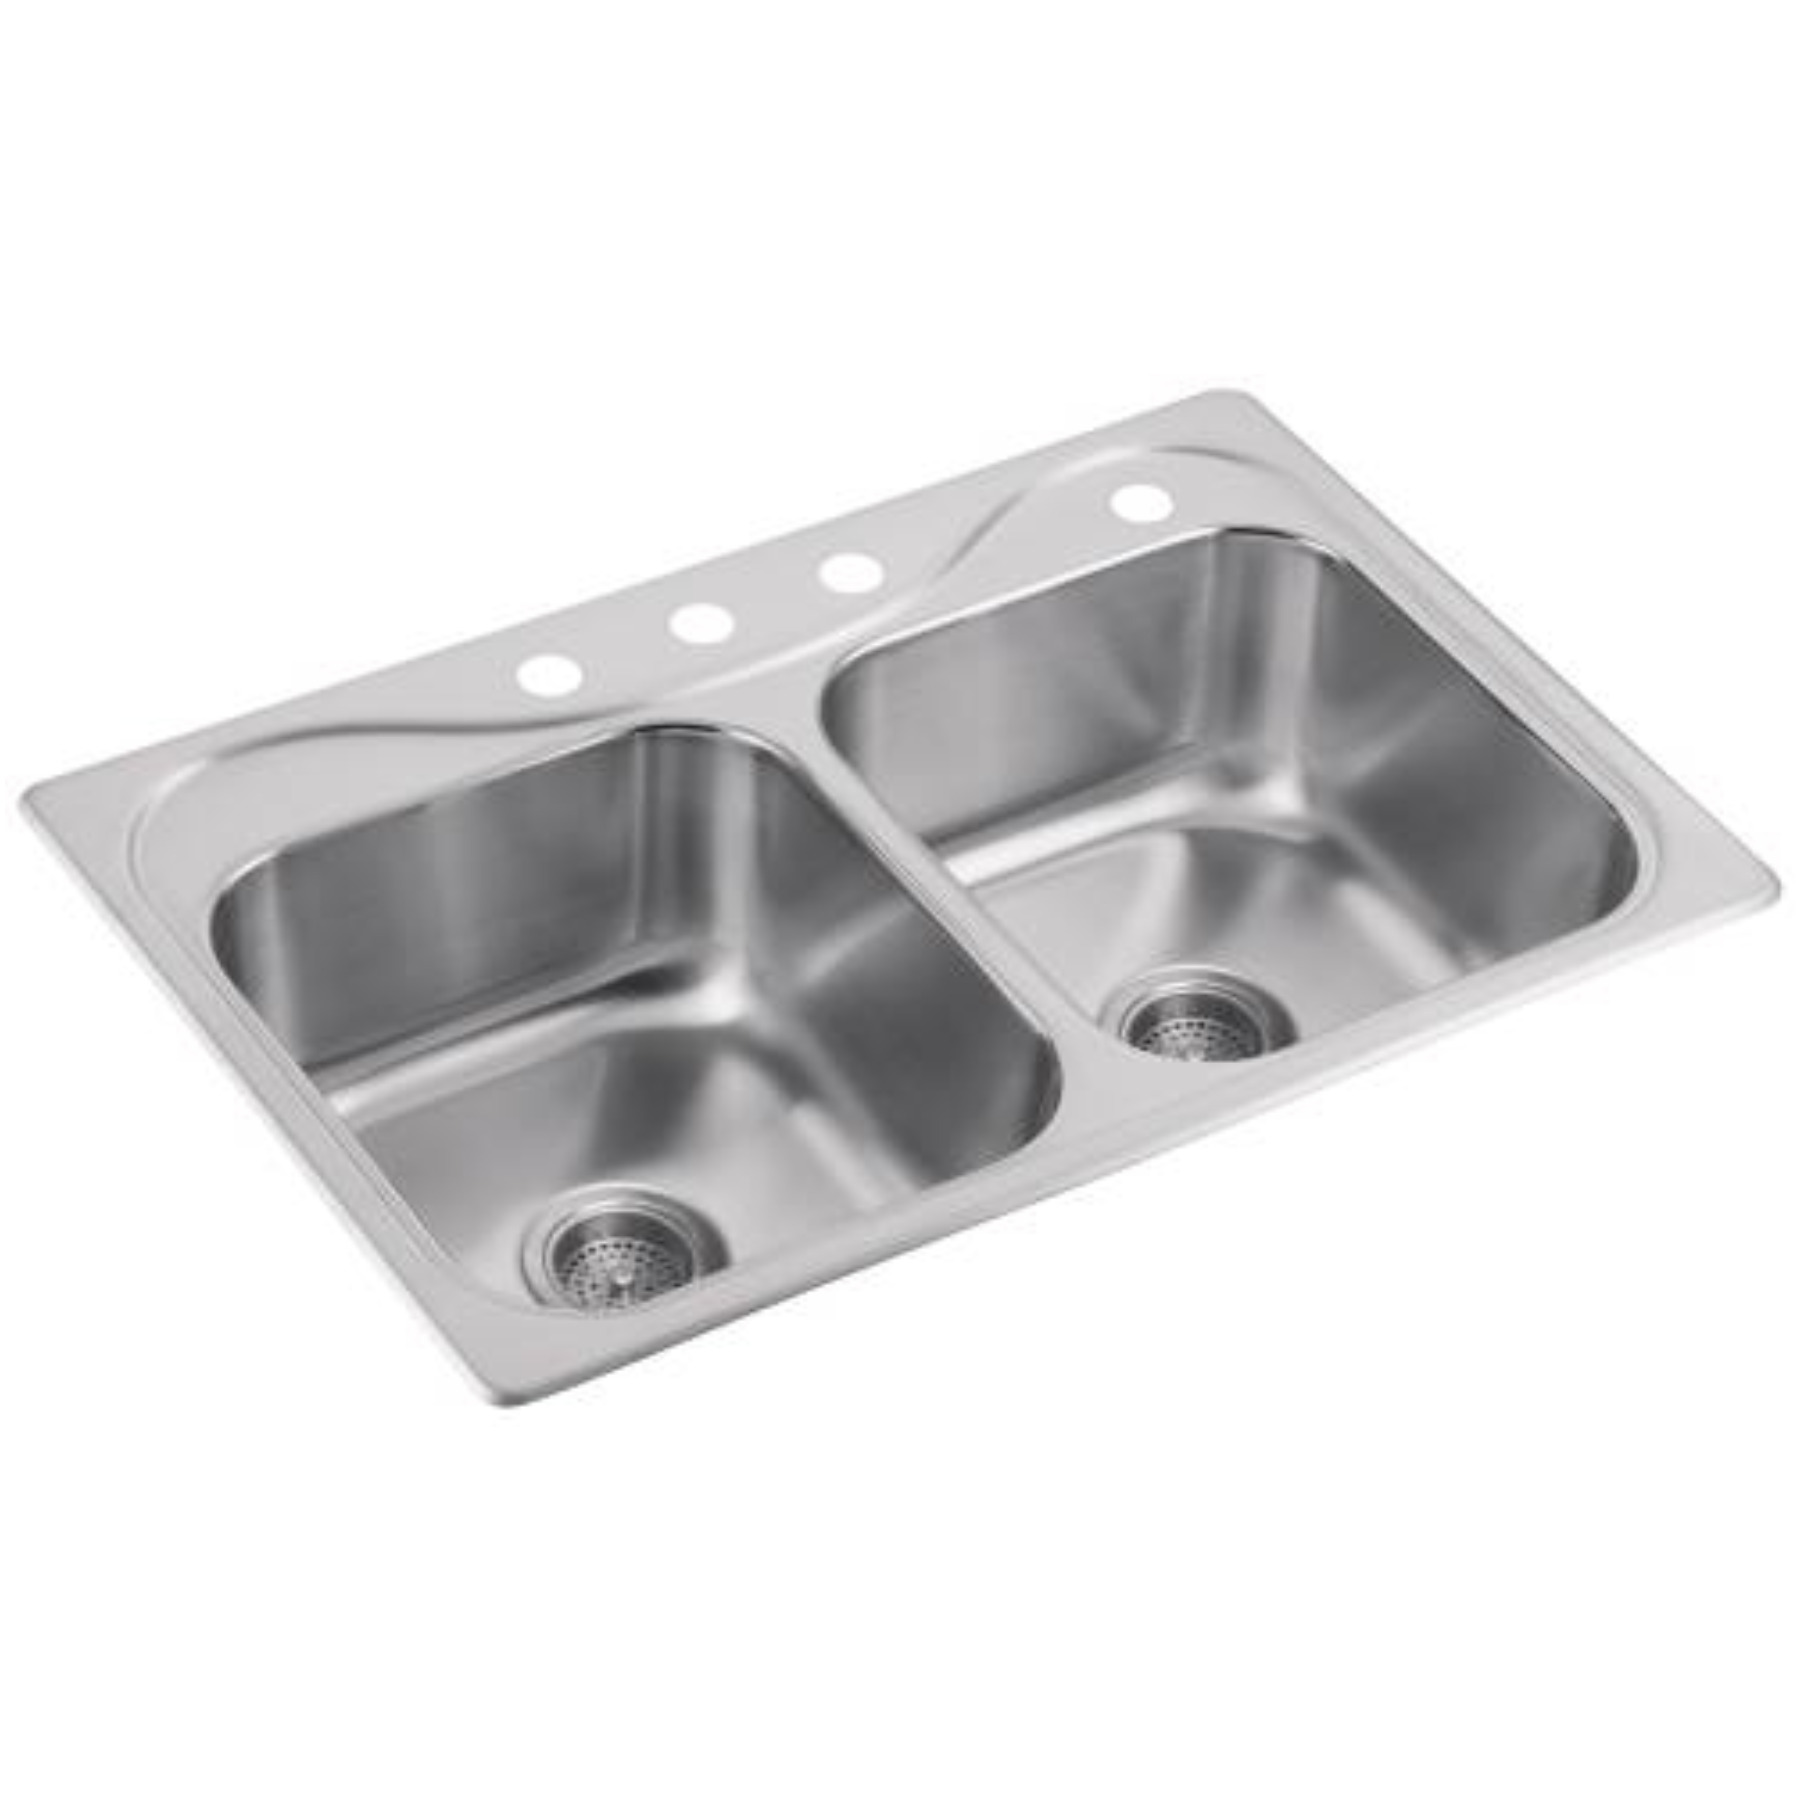 STERLING� DOUBLE-BOWL KITCHEN SINK, 20-GAUGE STAINLESS STEEL, 33X22X8 IN.